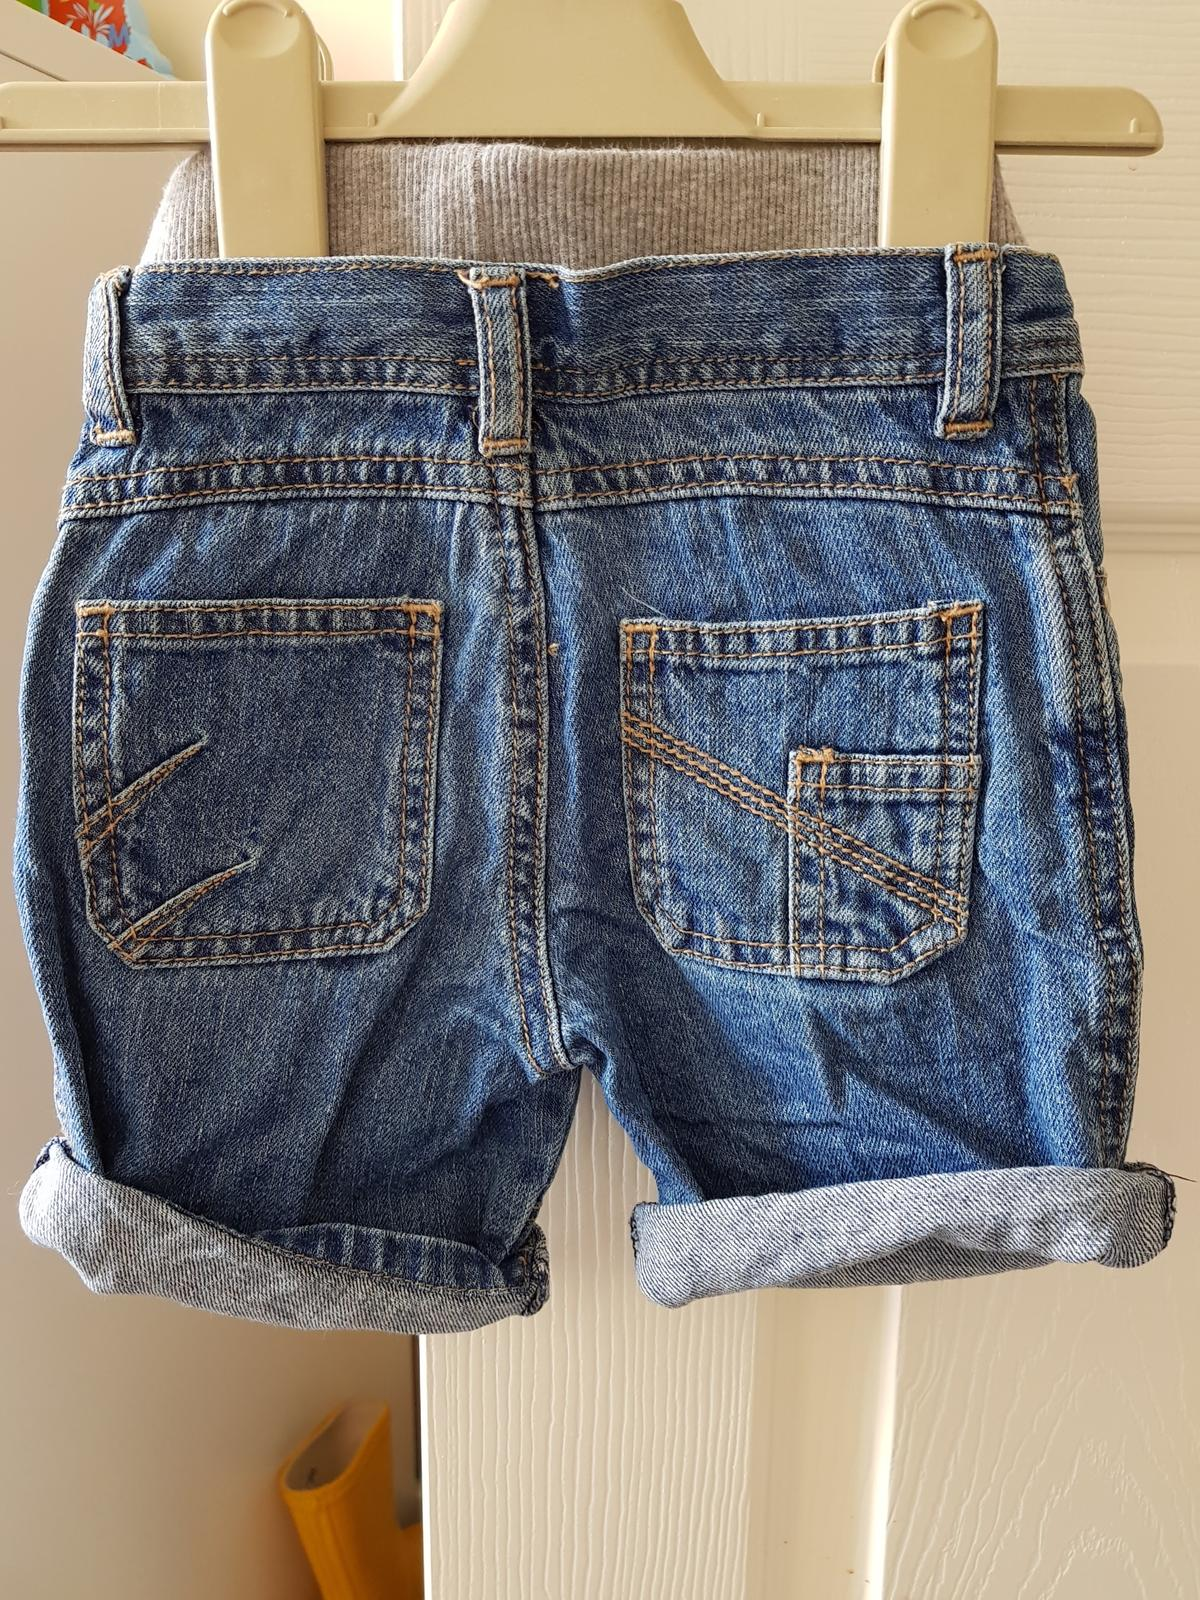 6e0ce5015 Mothrrcare boys denim shorts 9-12 months in LE4 Birstall for £4.50 ...